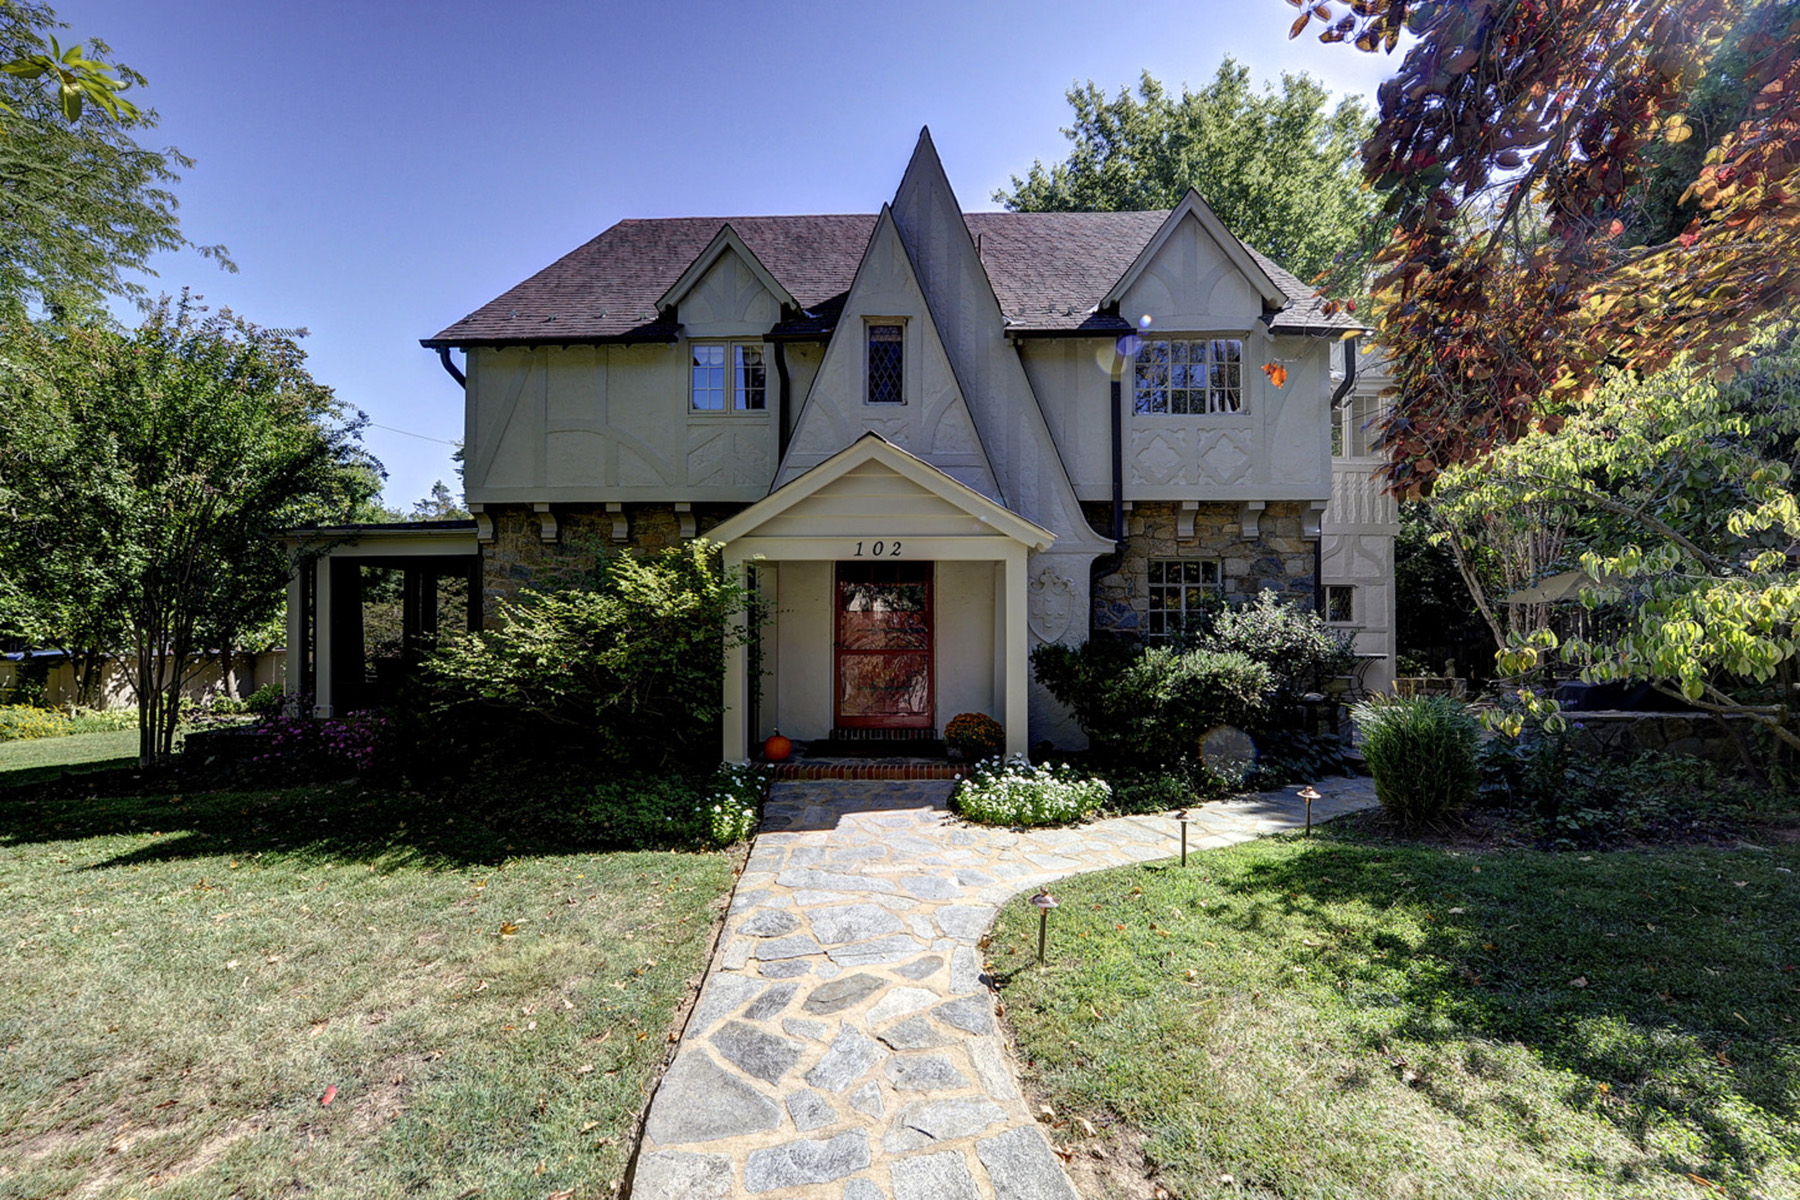 Single Family Home for Sale at 102 Oxford Street, Chevy Chase Chevy Chase, Maryland, 20815 United States